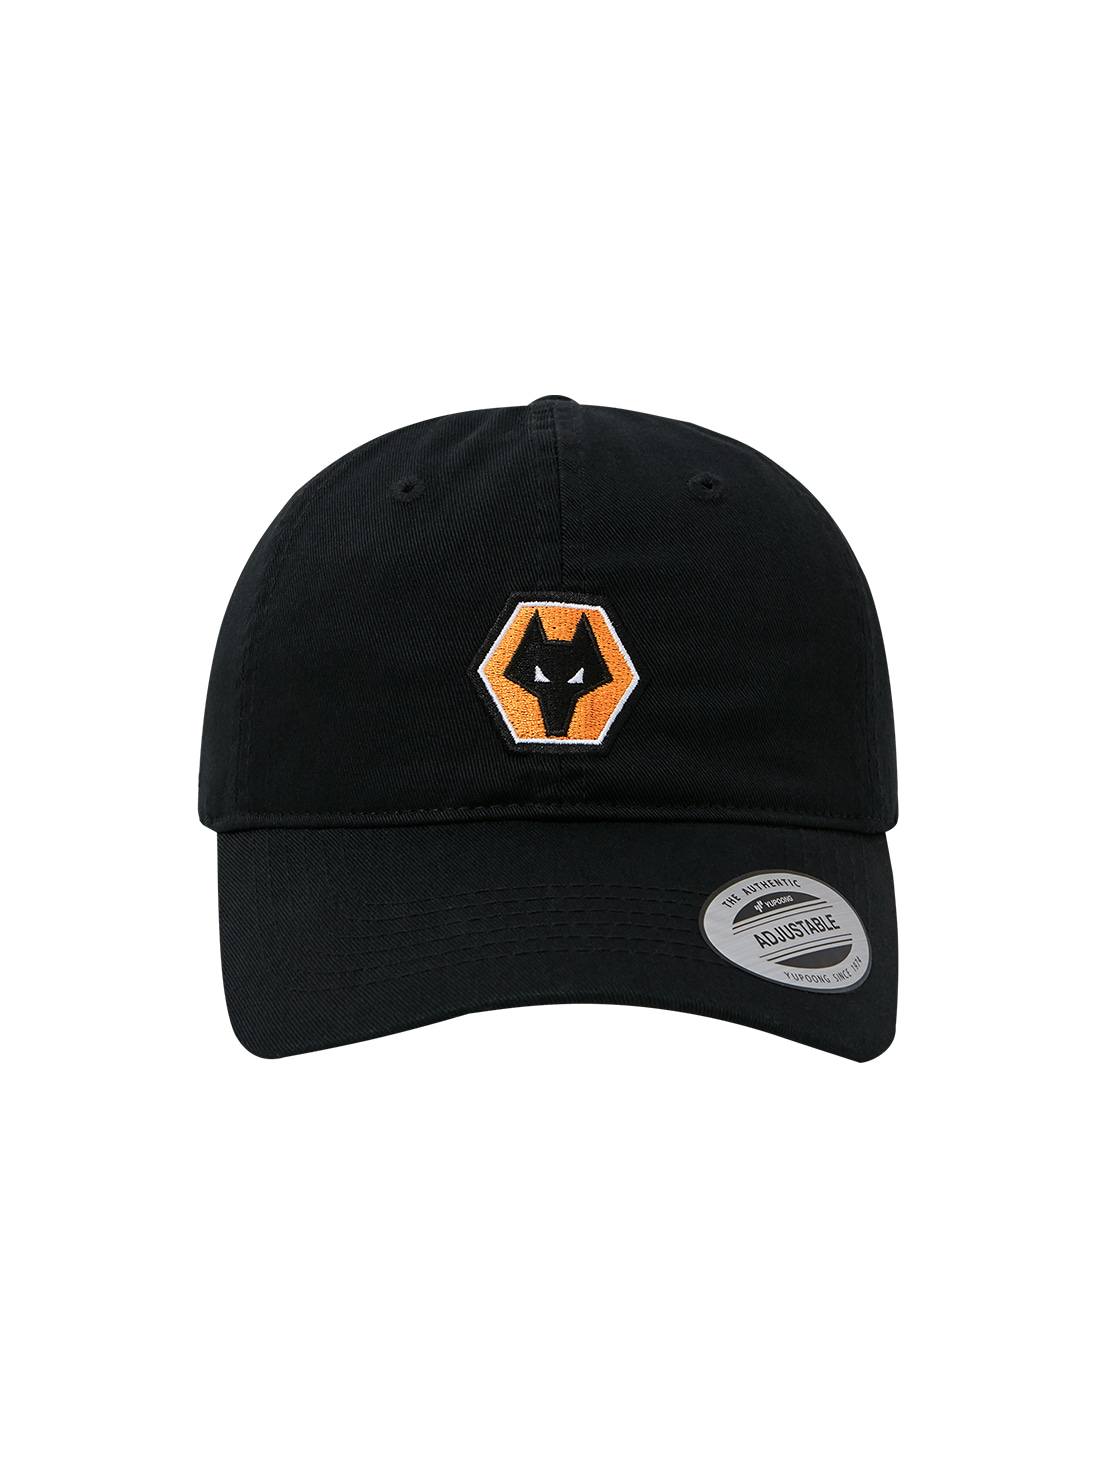 GOALSTUDIO (Sold Out) WOLVERHAMPTON STRAP LOGO CAP